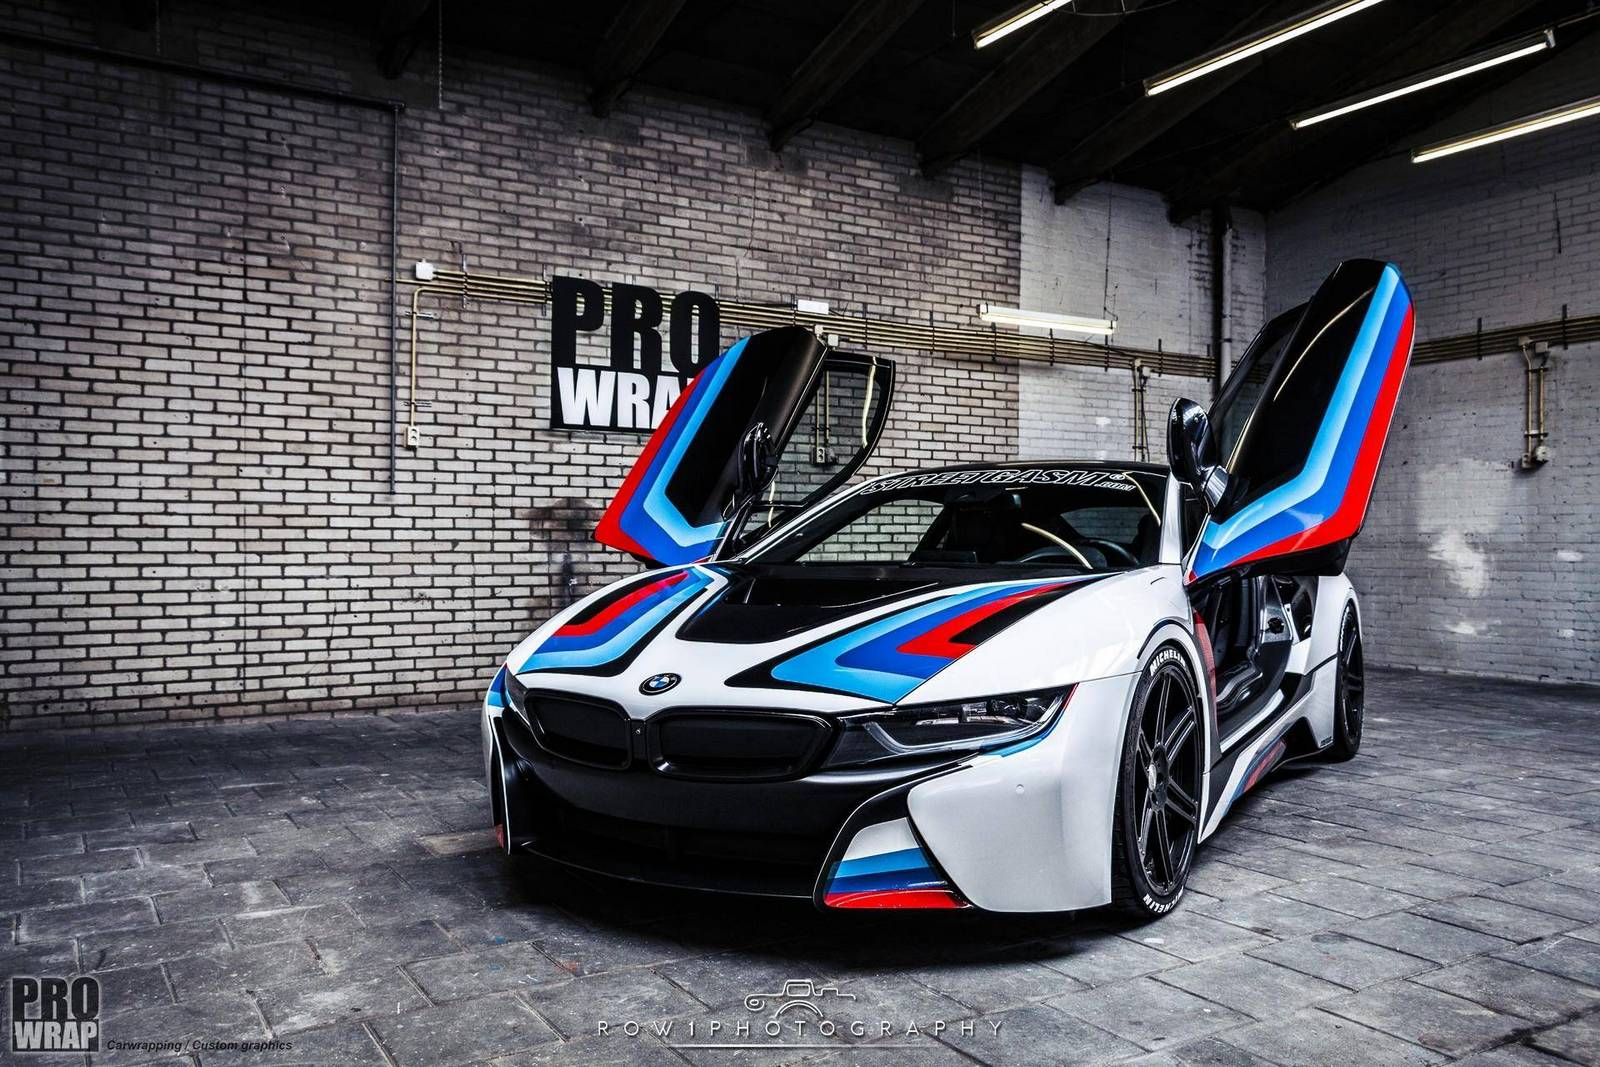 Online Garage Design Custom Wrapped Bmw I8 By Prowrap In The Netherlands Gtspirit